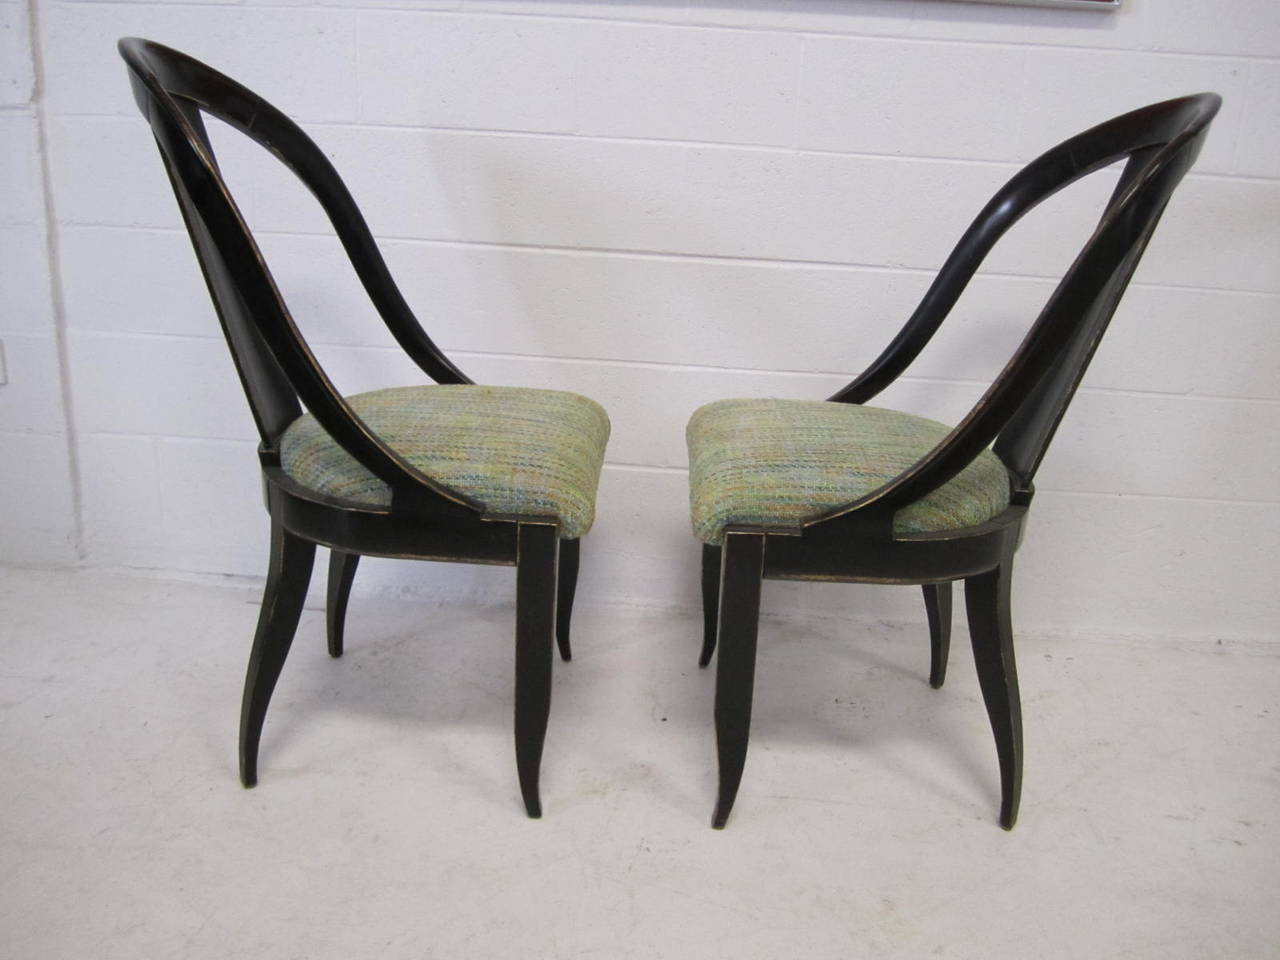 Sensuous Pair of Swaim Spoon Back Lacquered Side Chairs